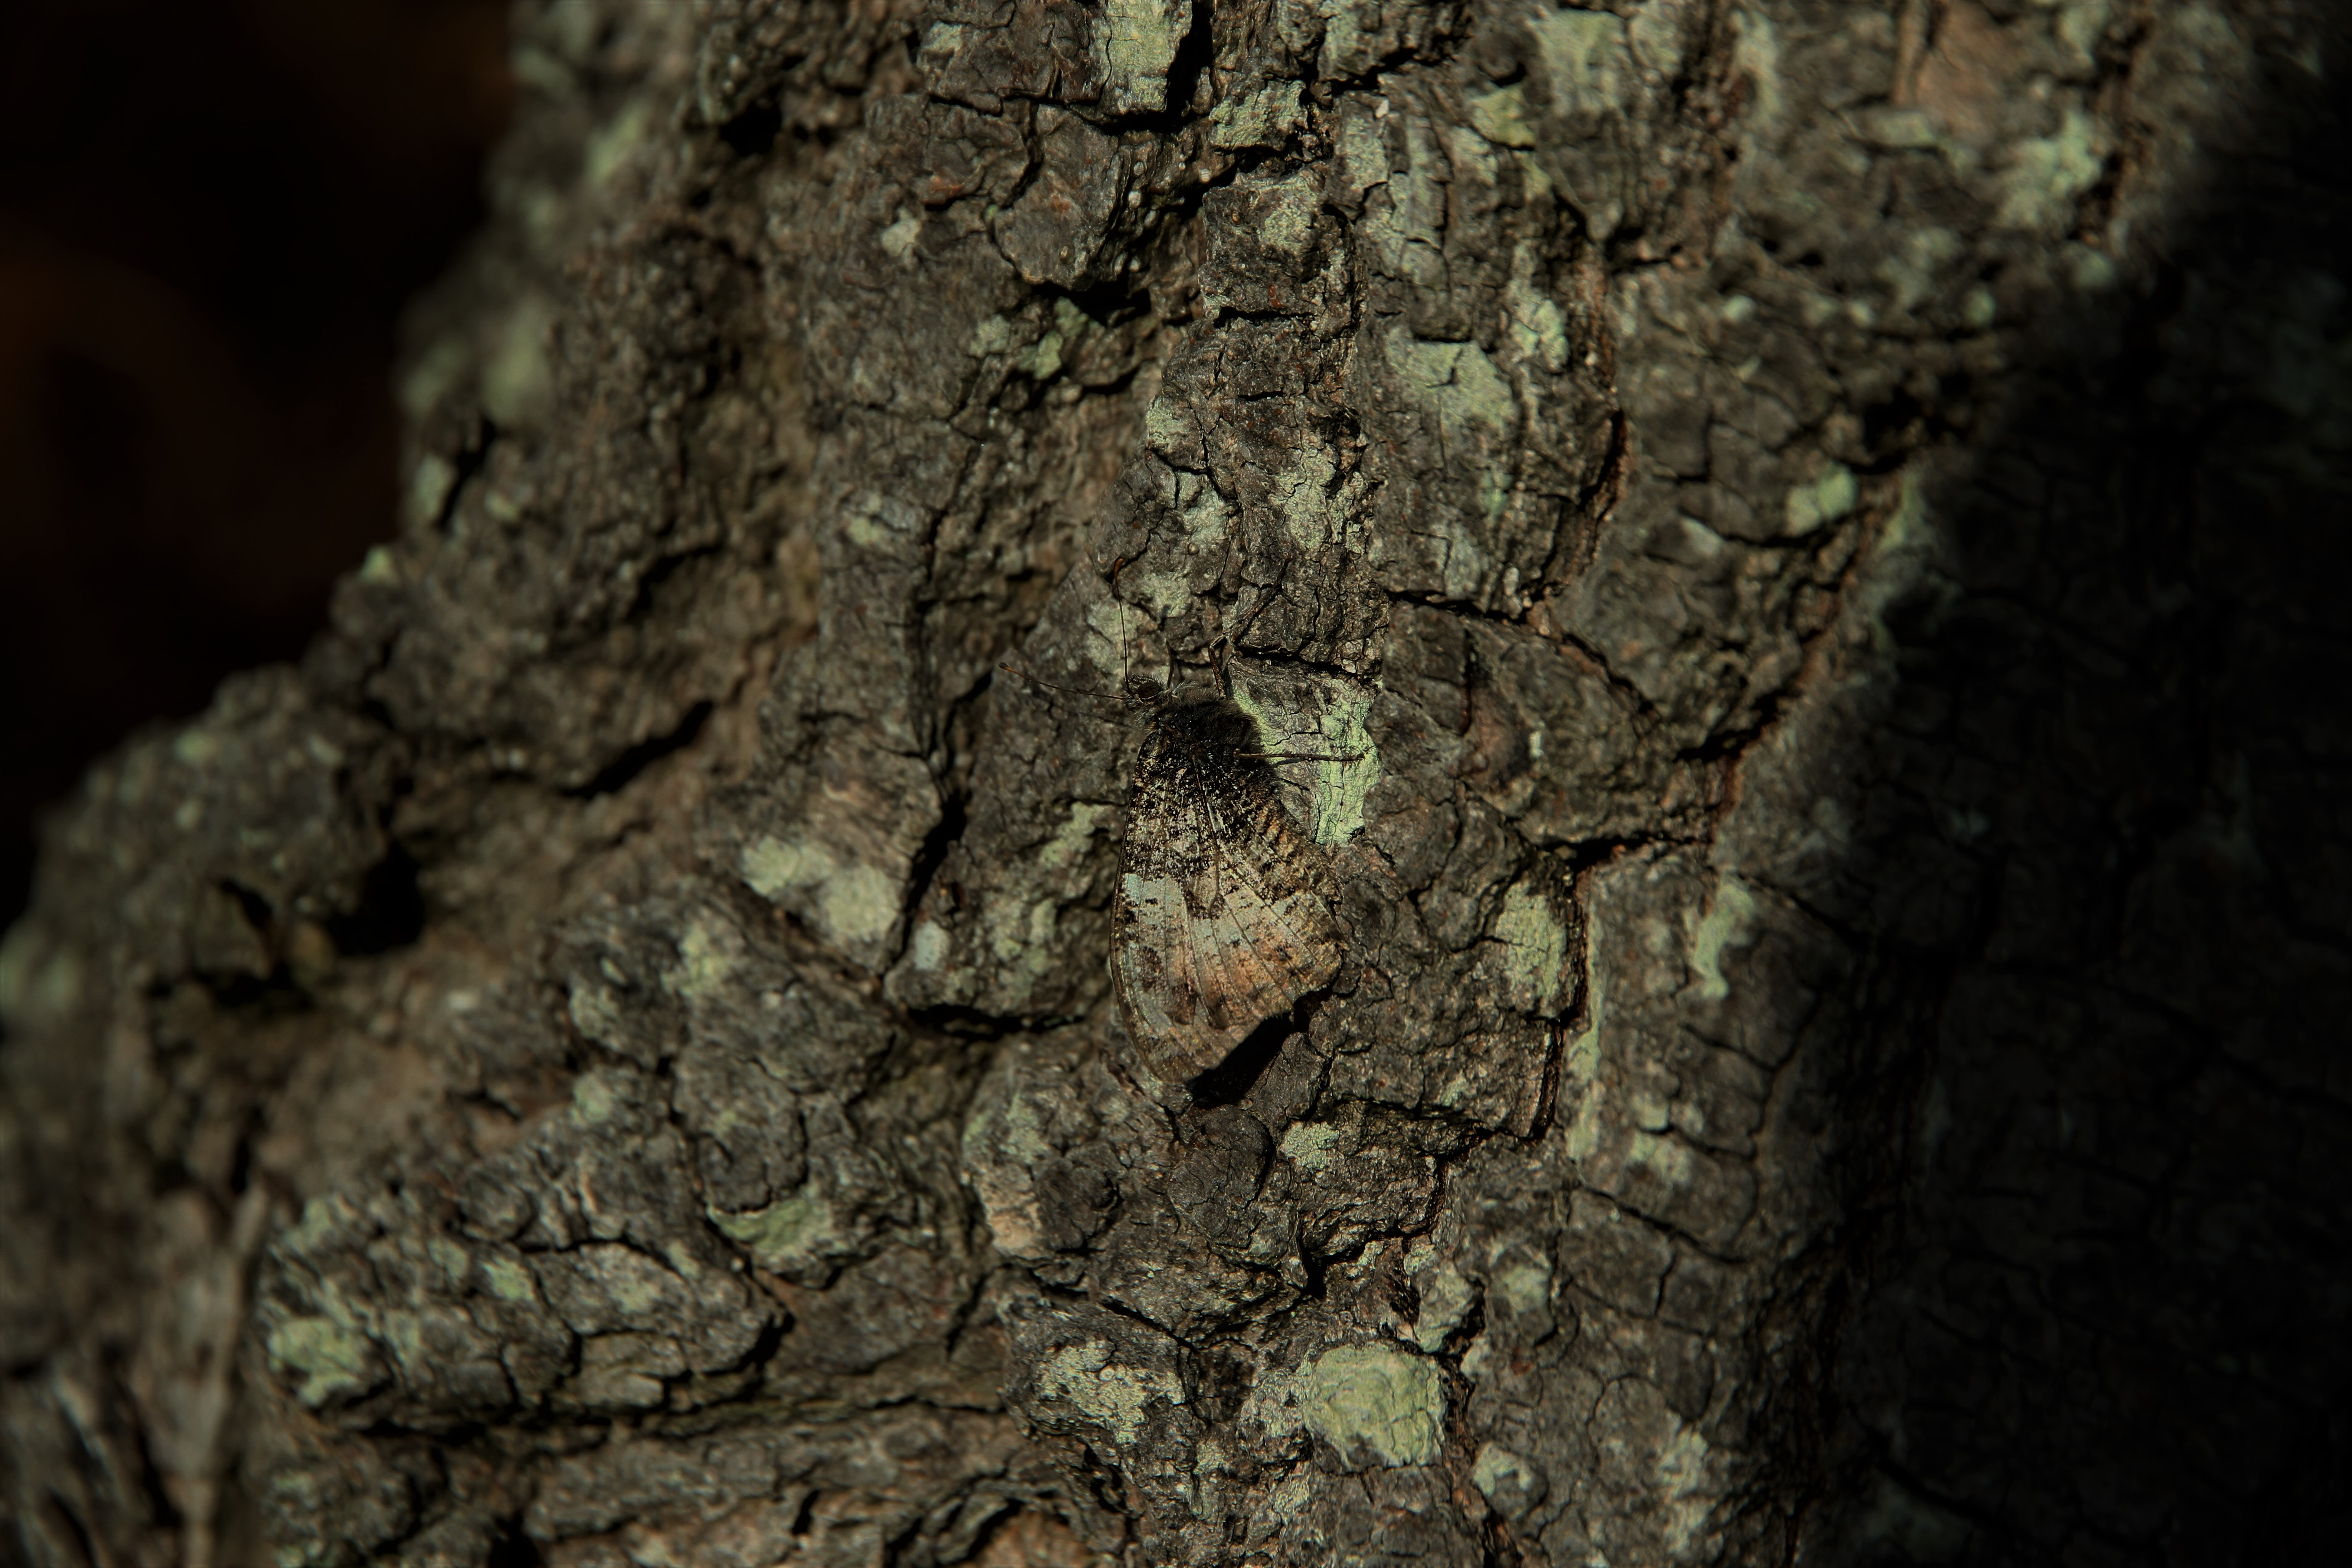 camouflage-by-paul-waite